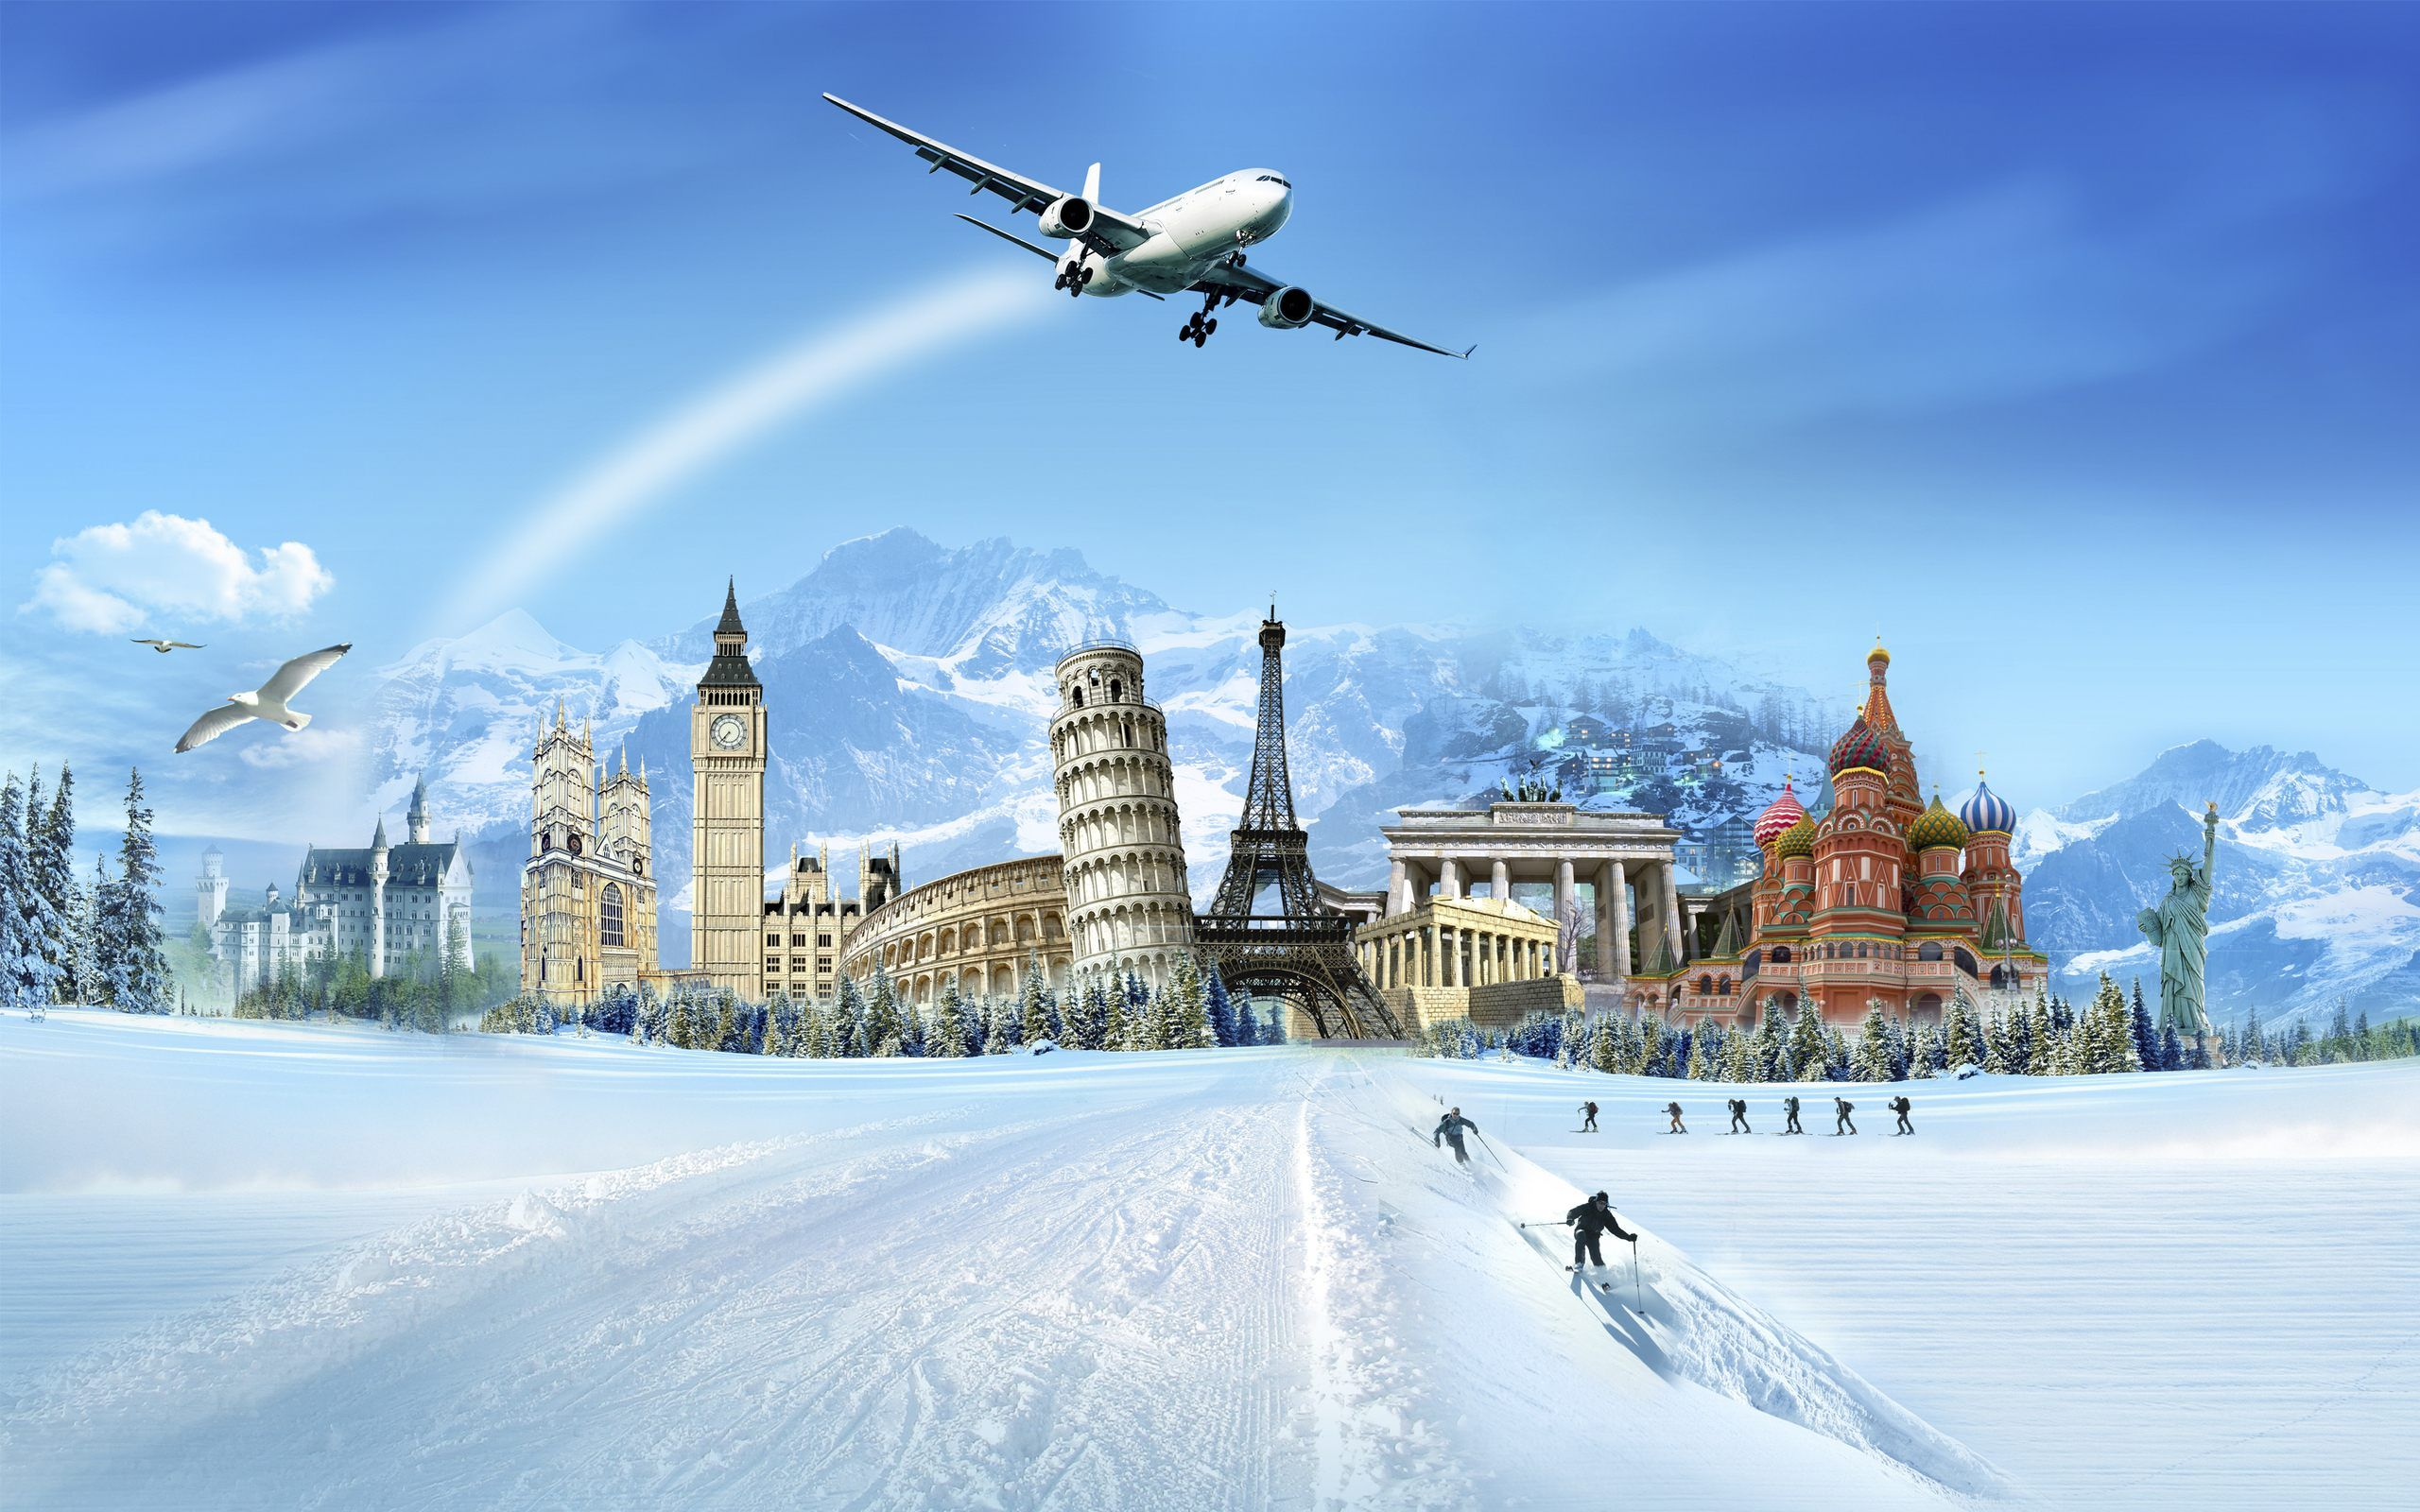 World Travel Wallpaper Of World Famous Places Wallpaper Europe Group Tours Honeymoon Tour Packages Holiday Tours